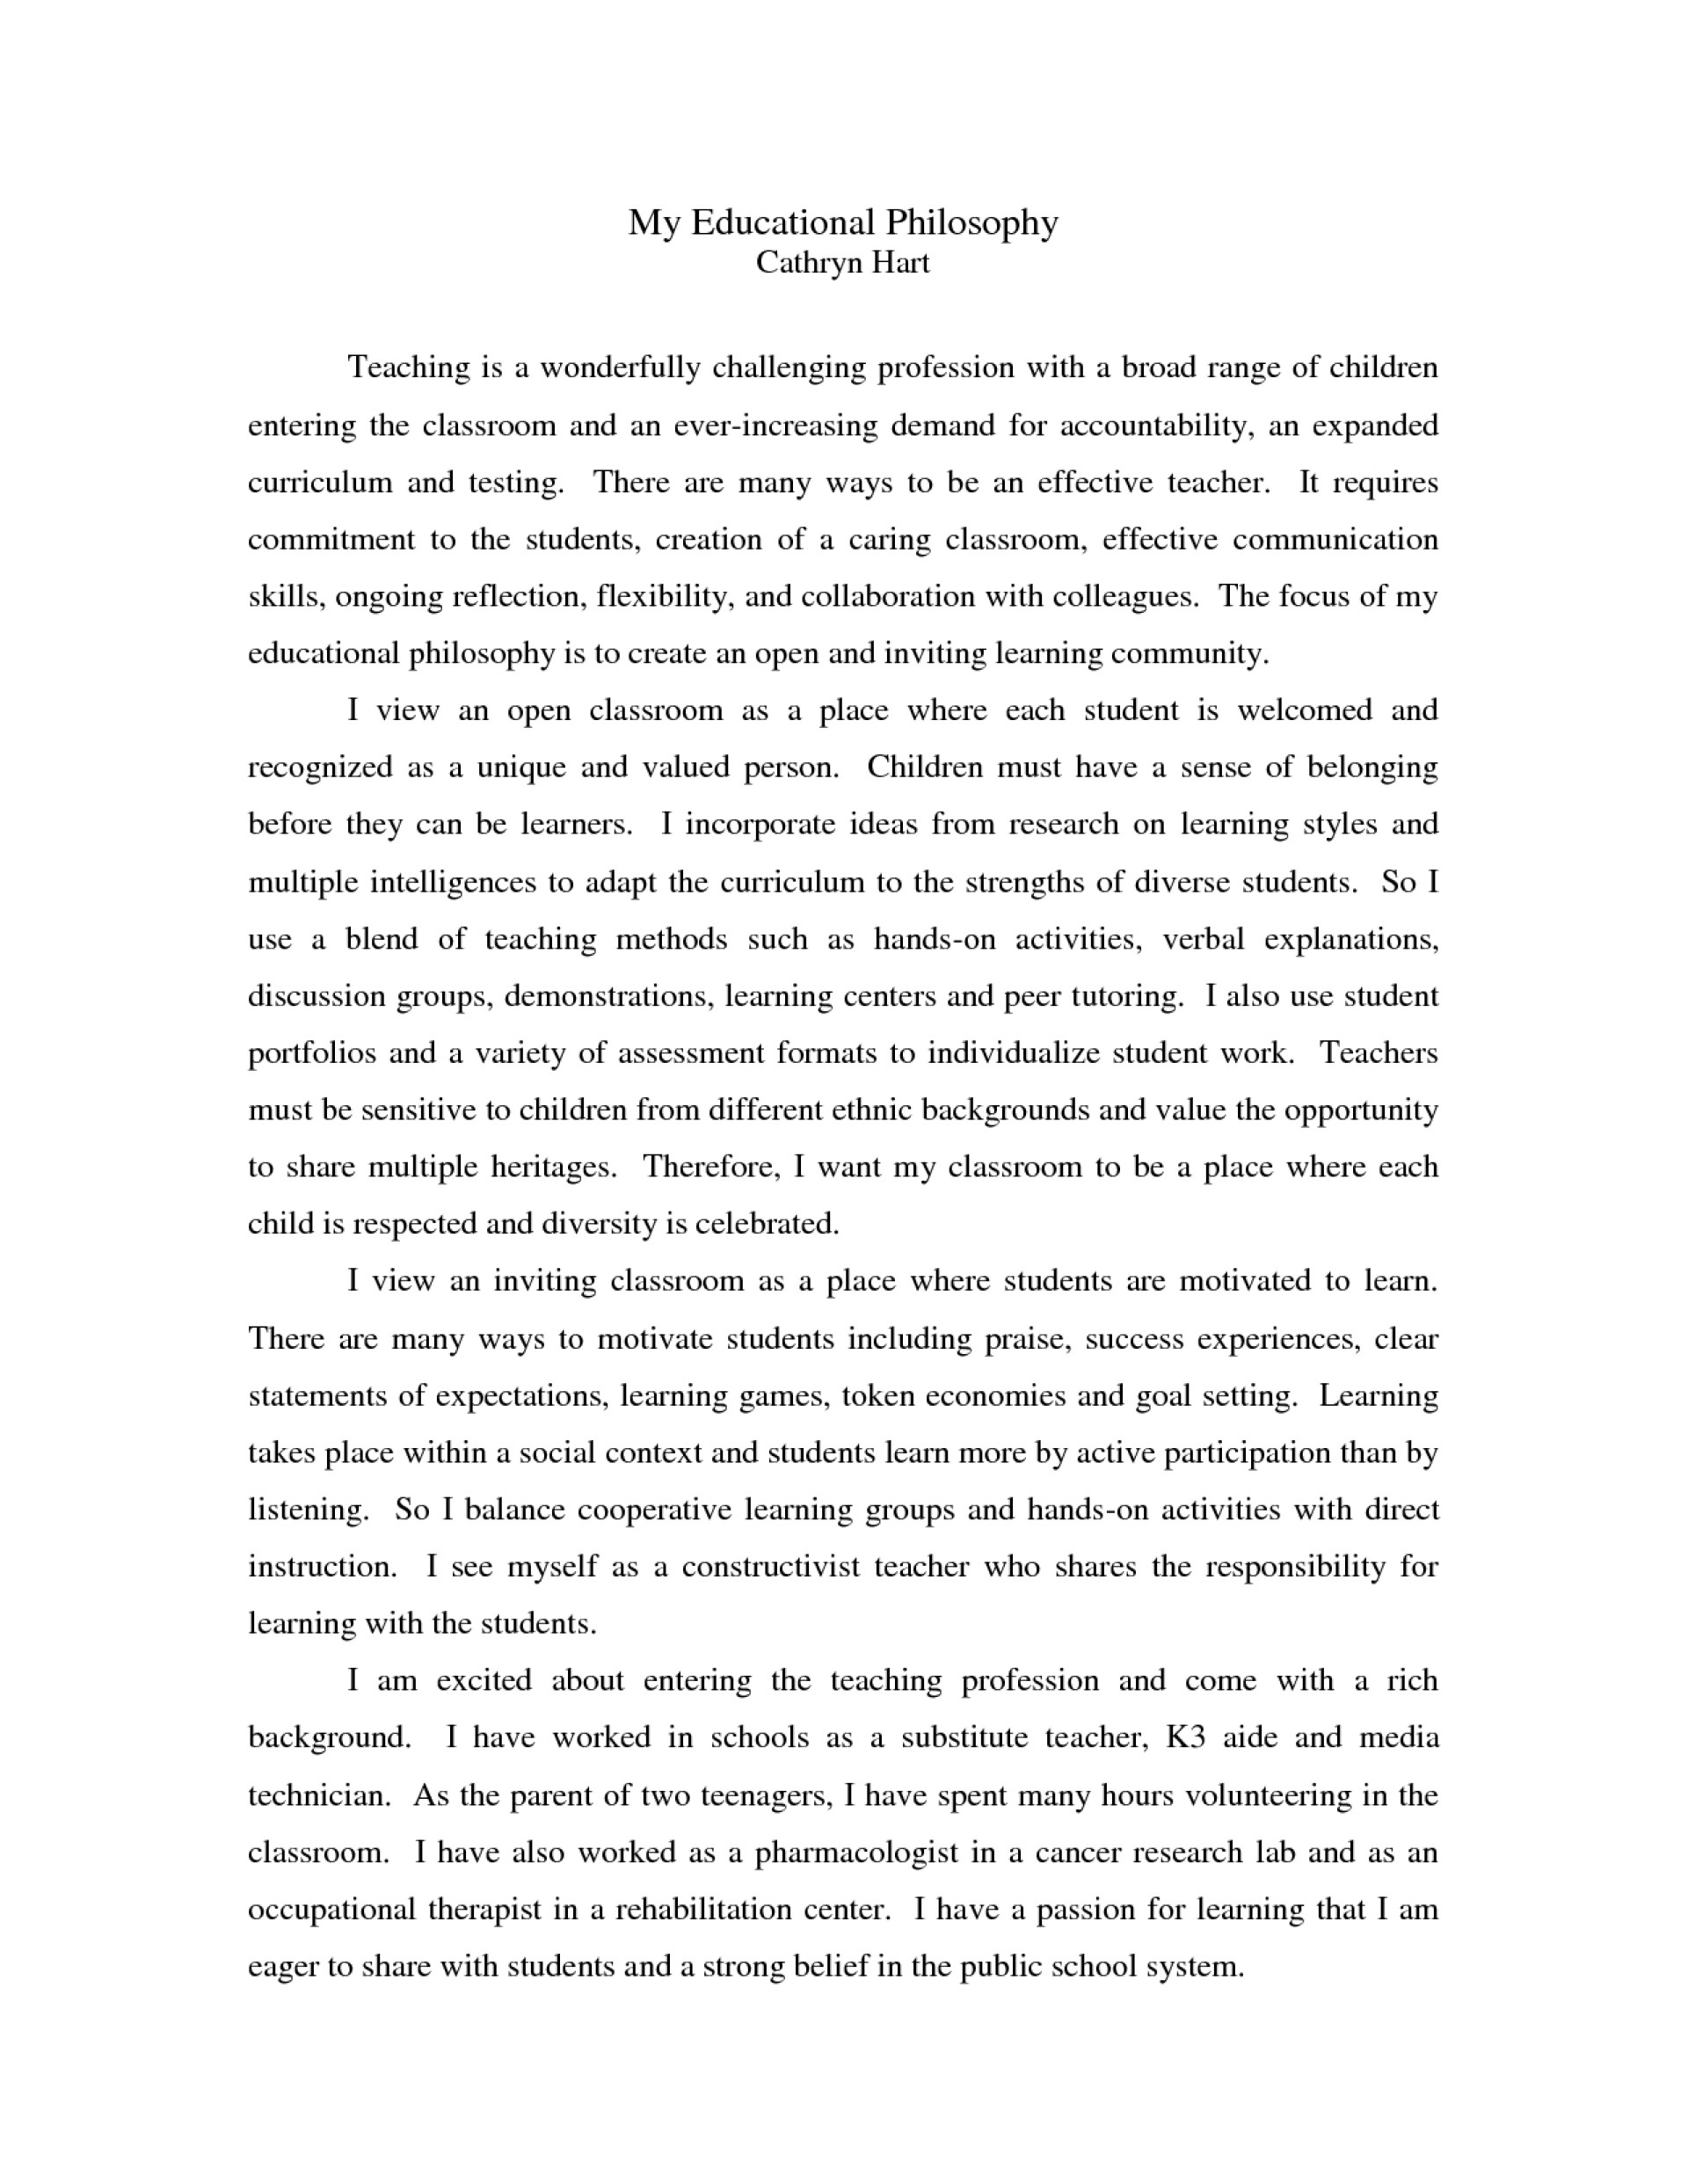 007 Essay Example Philosophy Of Teaching Dreaded My Personal And Learning Education Pdf 1920